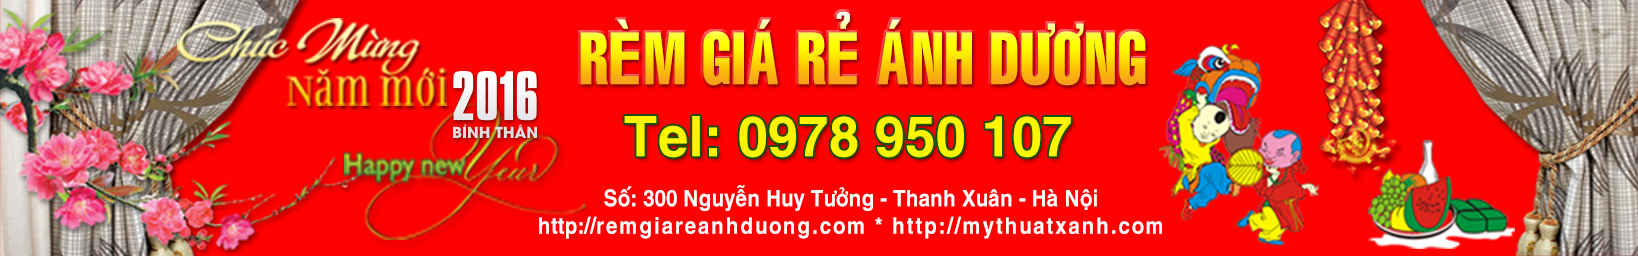 http://remgiareanhduong.com